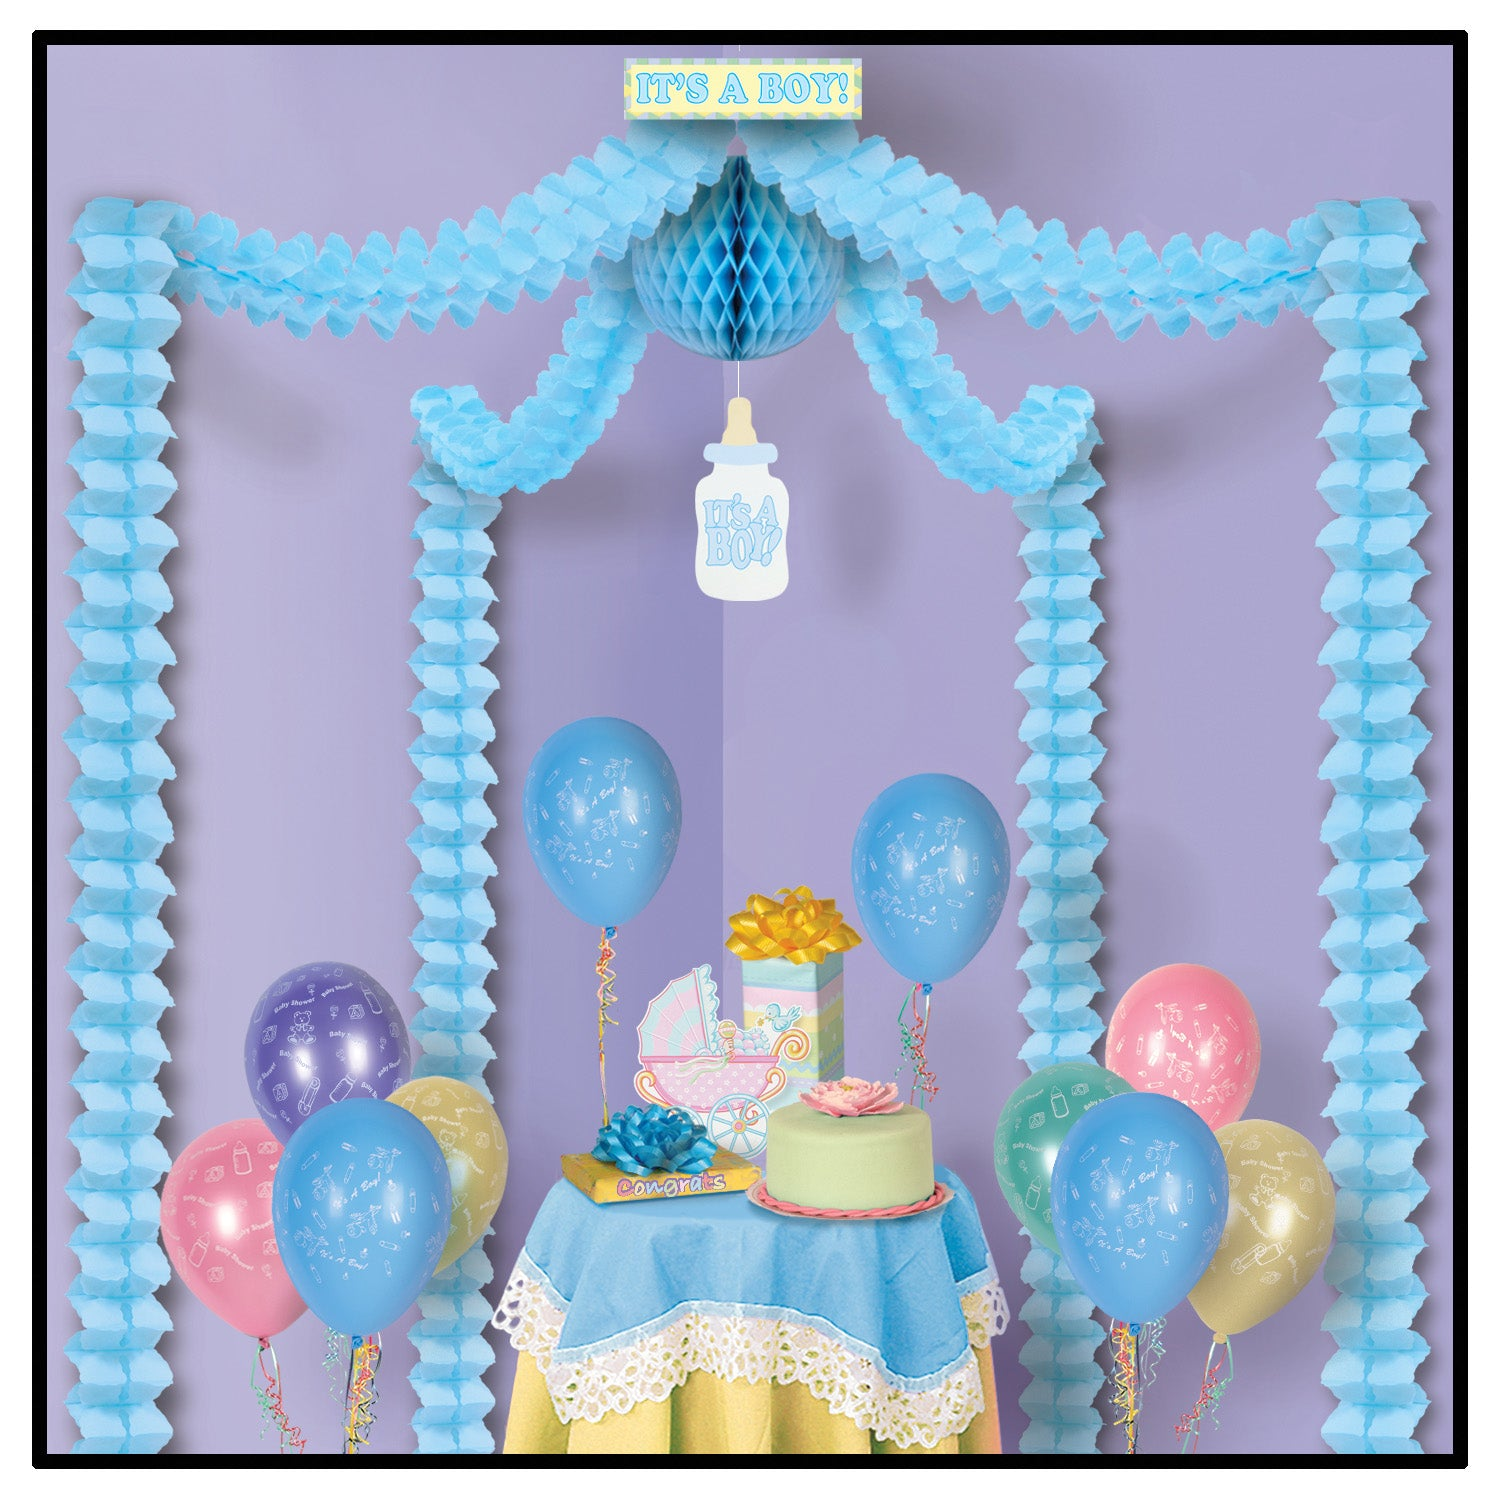 It's A Boy! Party Canopy by Beistle - Baby Shower Theme Decorations